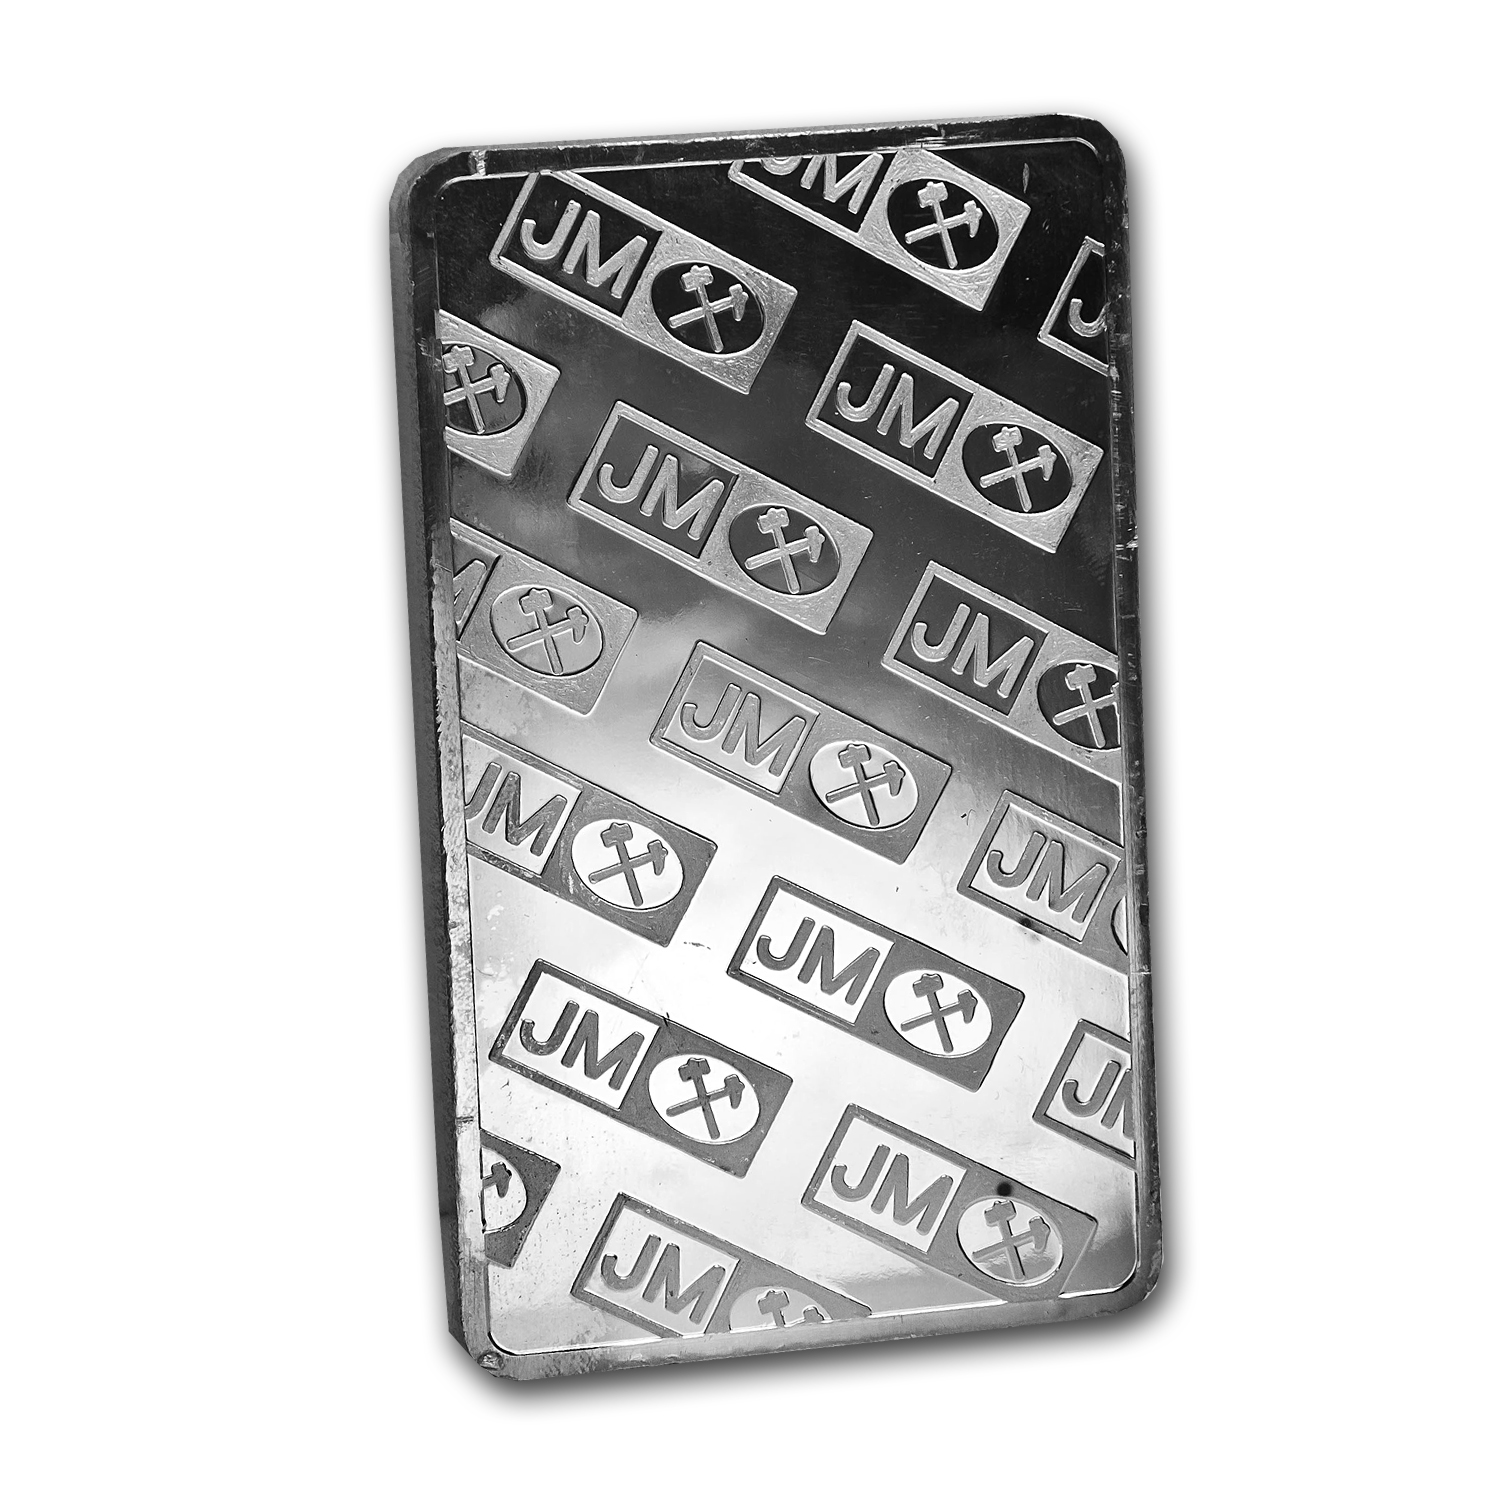 1/2 Kilo Silver Bars - Johnson Matthey (Pressed)